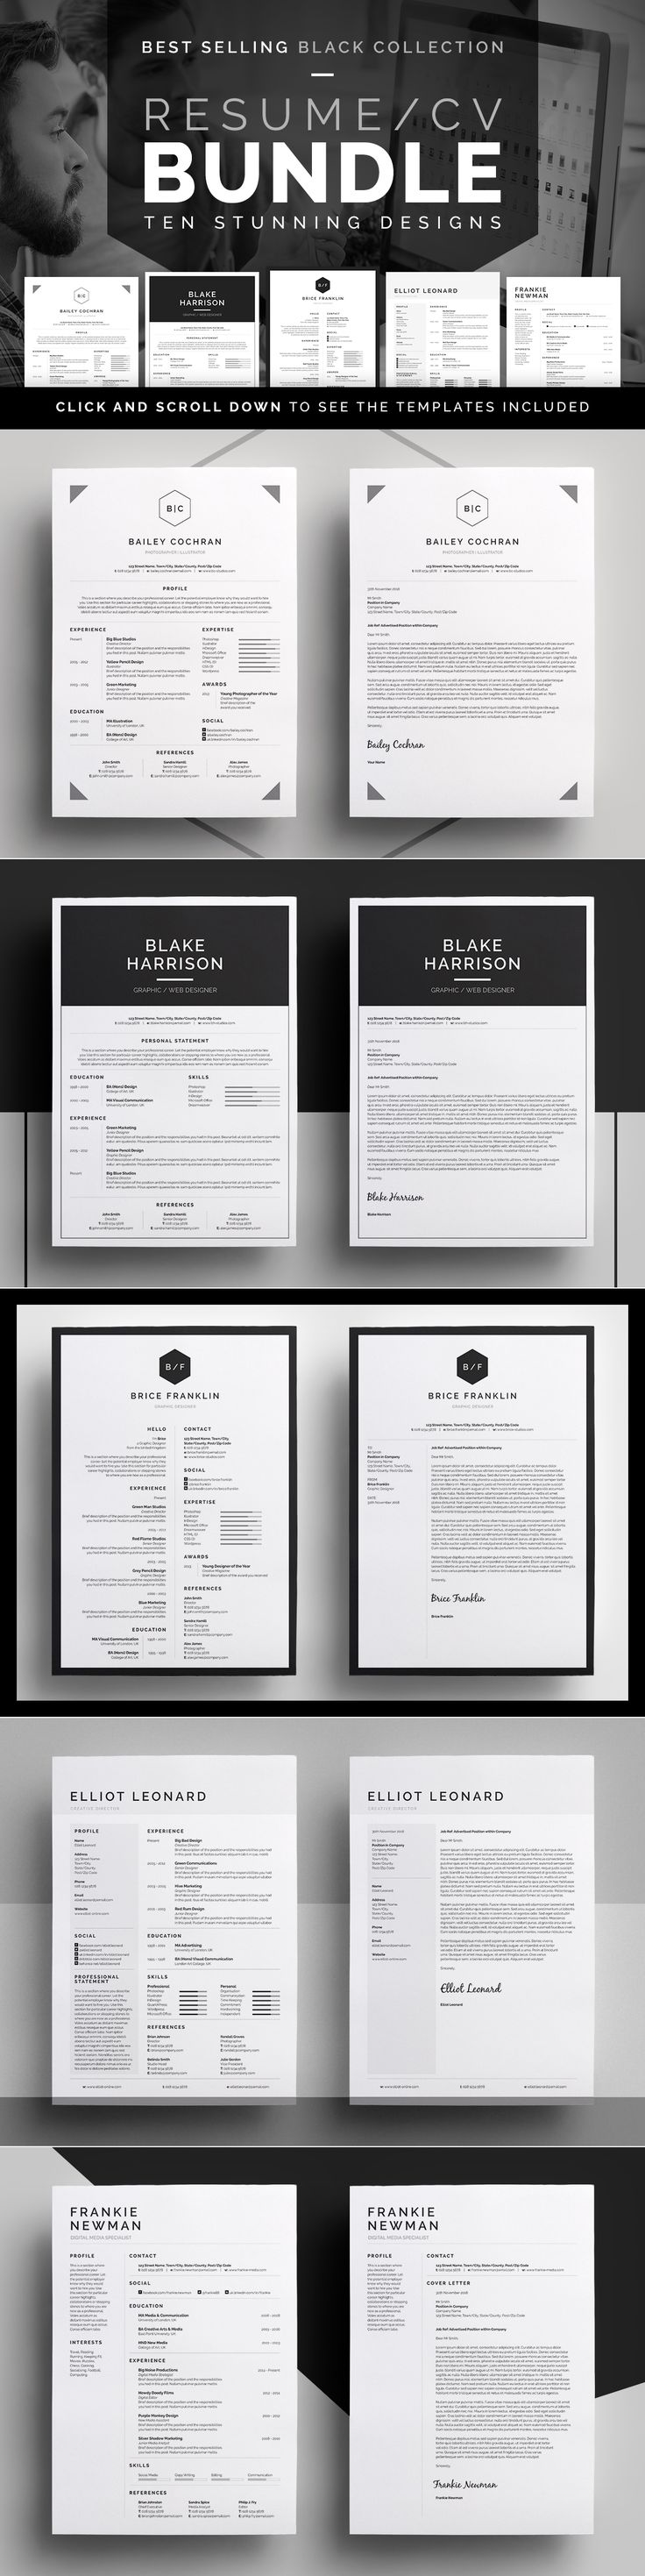 The 25 best business resume template ideas on pinterest resume resumecv bundle cover letters business cards customizable templates modern yelopaper Gallery